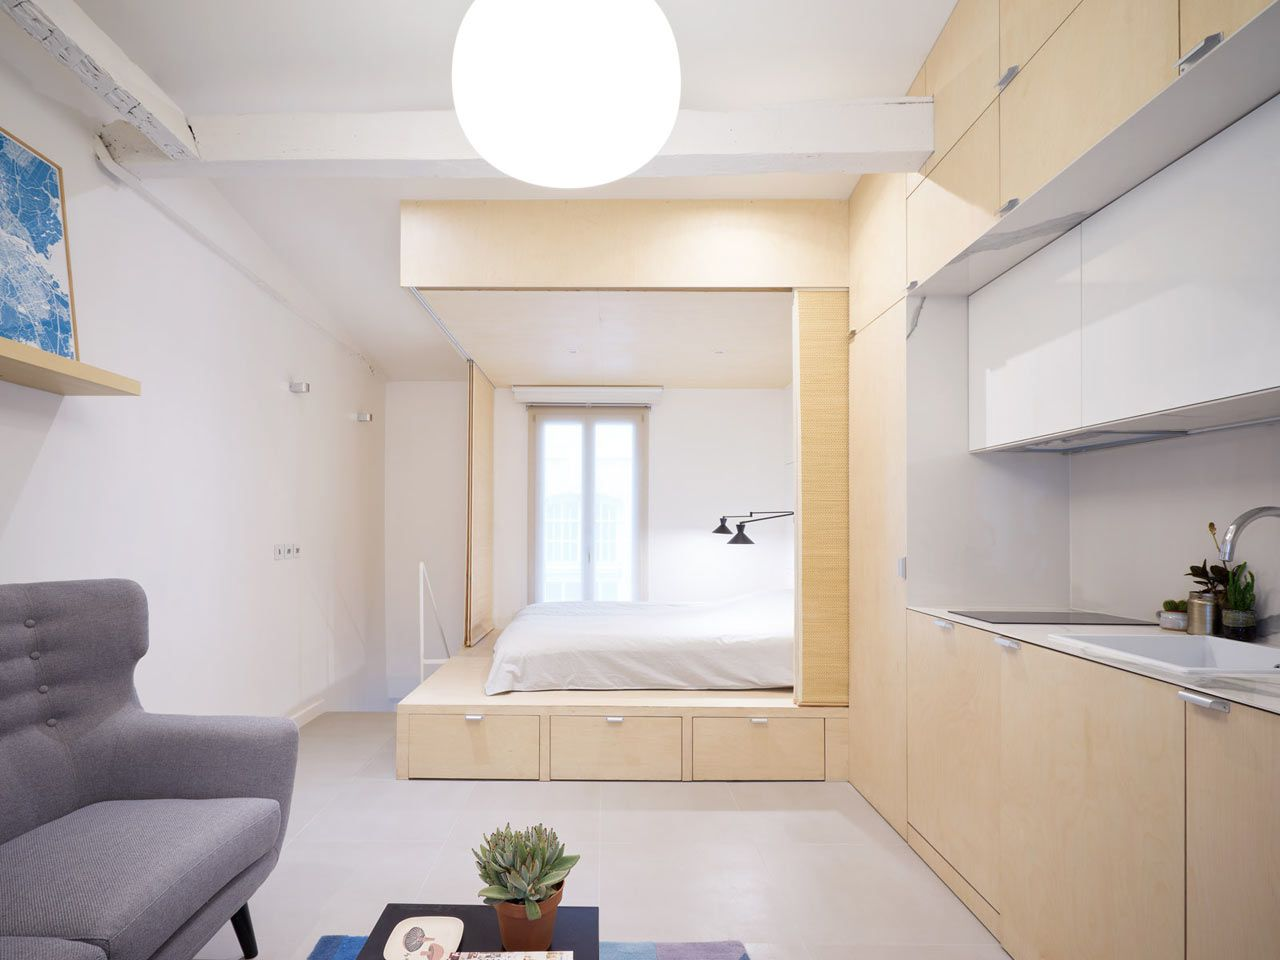 Urban cocoon is a compact apartment in paris that gets a modern